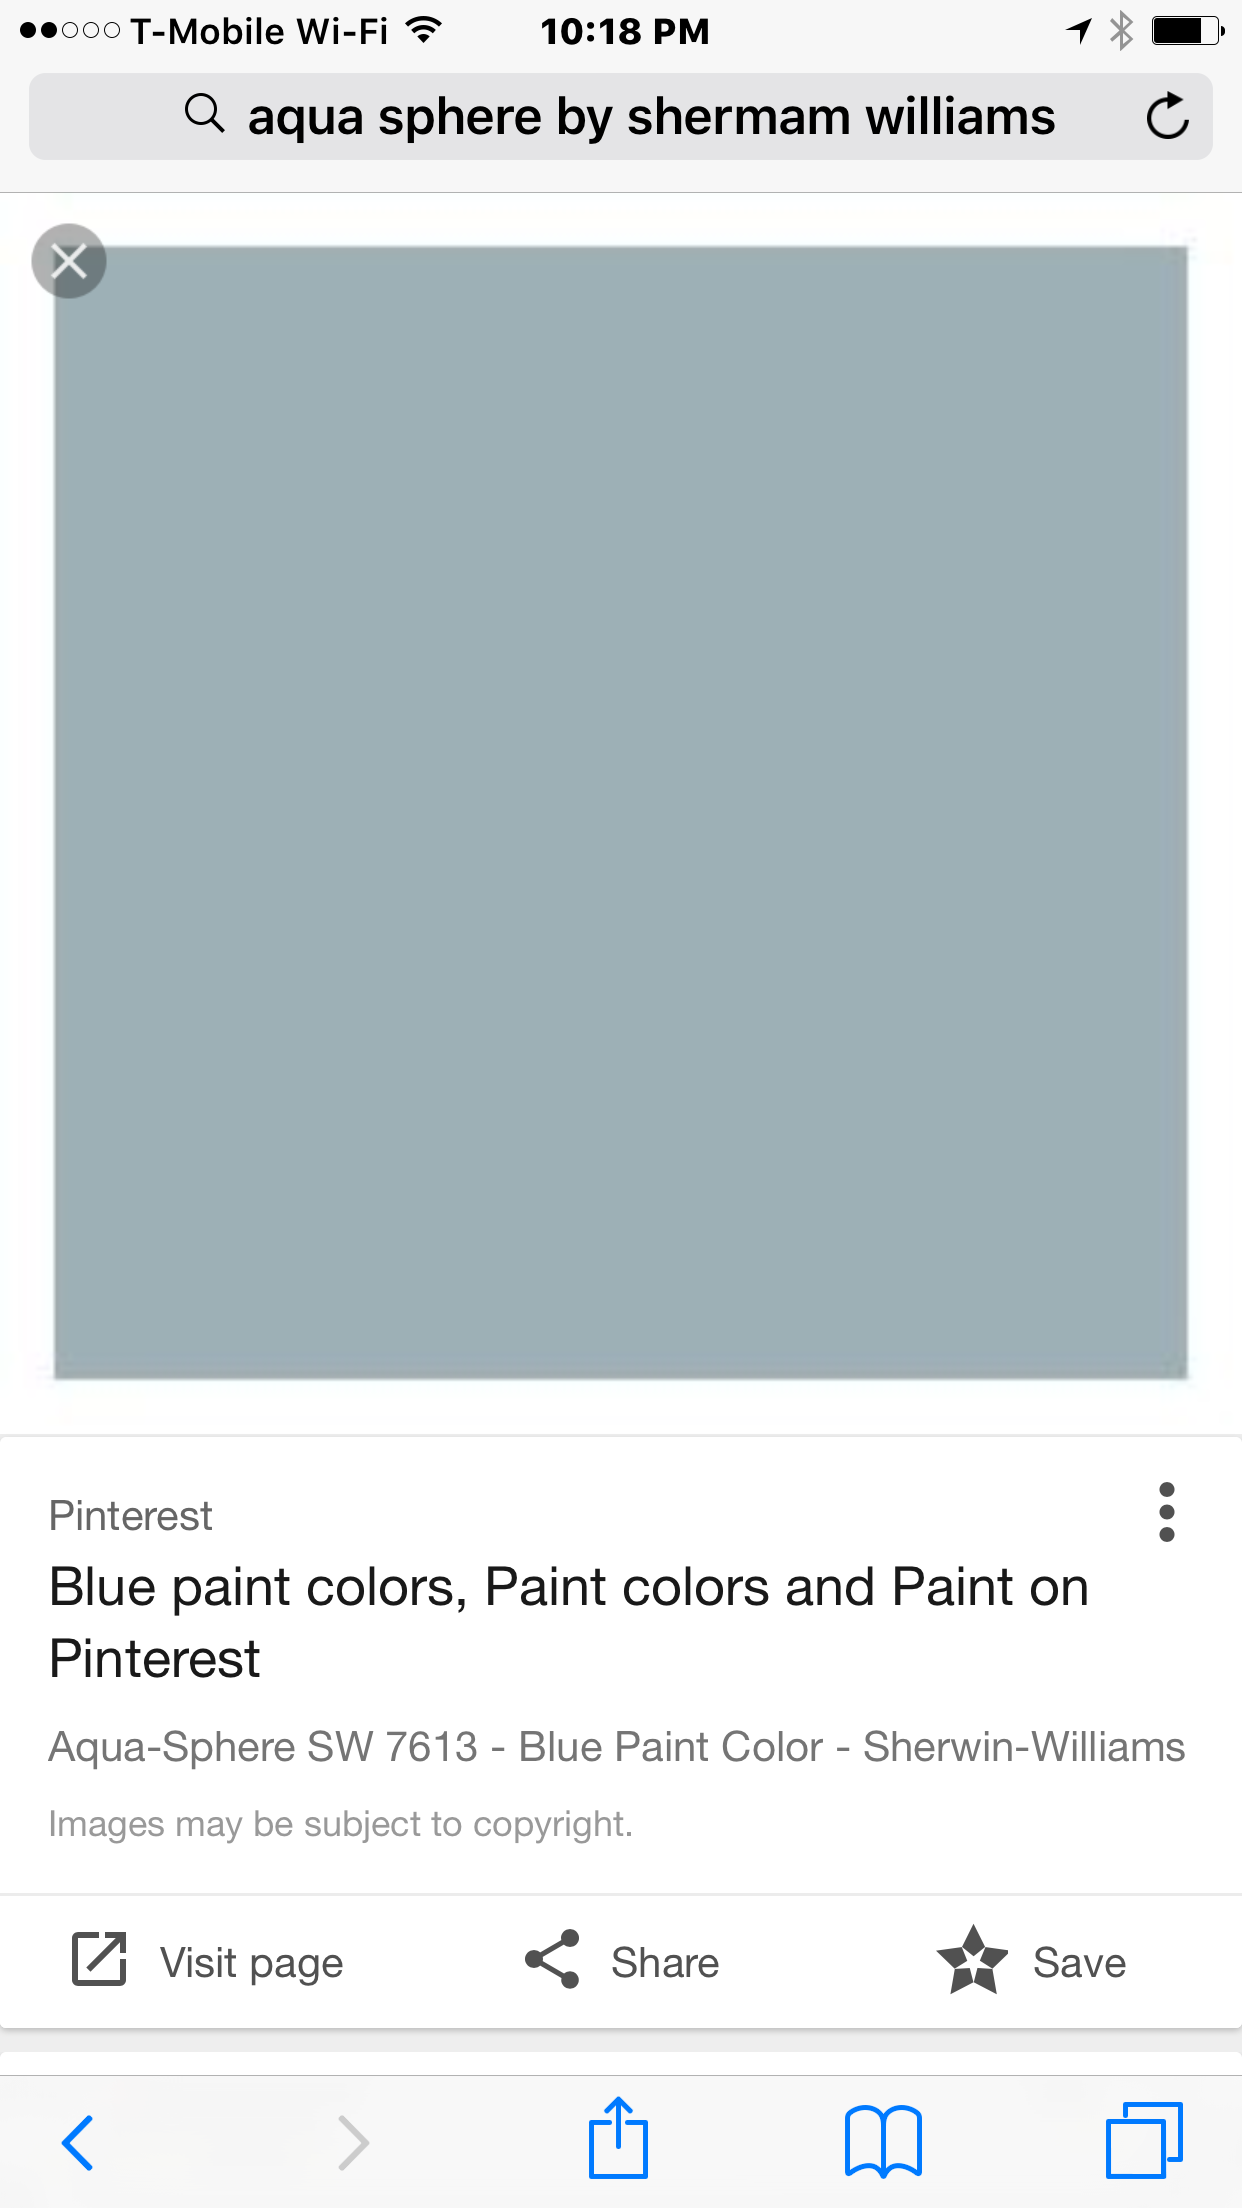 Aqua Sphere By Sherman Williams Find This Pin And More On Paint Colors